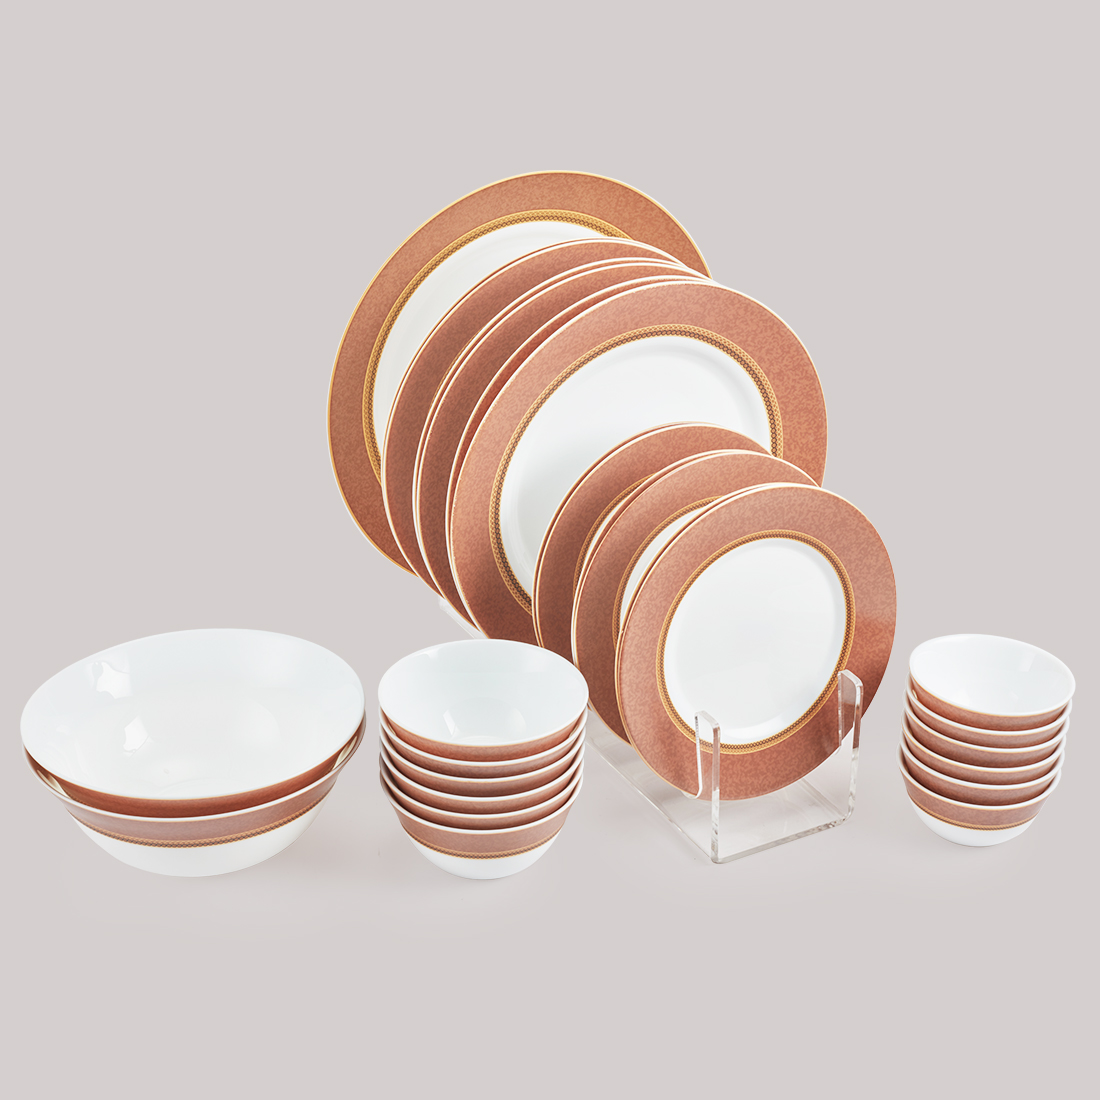 Diva Sovrana Dinner Set 27 Pcs Empres Brown Glass Dinner Sets in Multi Colour Colour by Diva